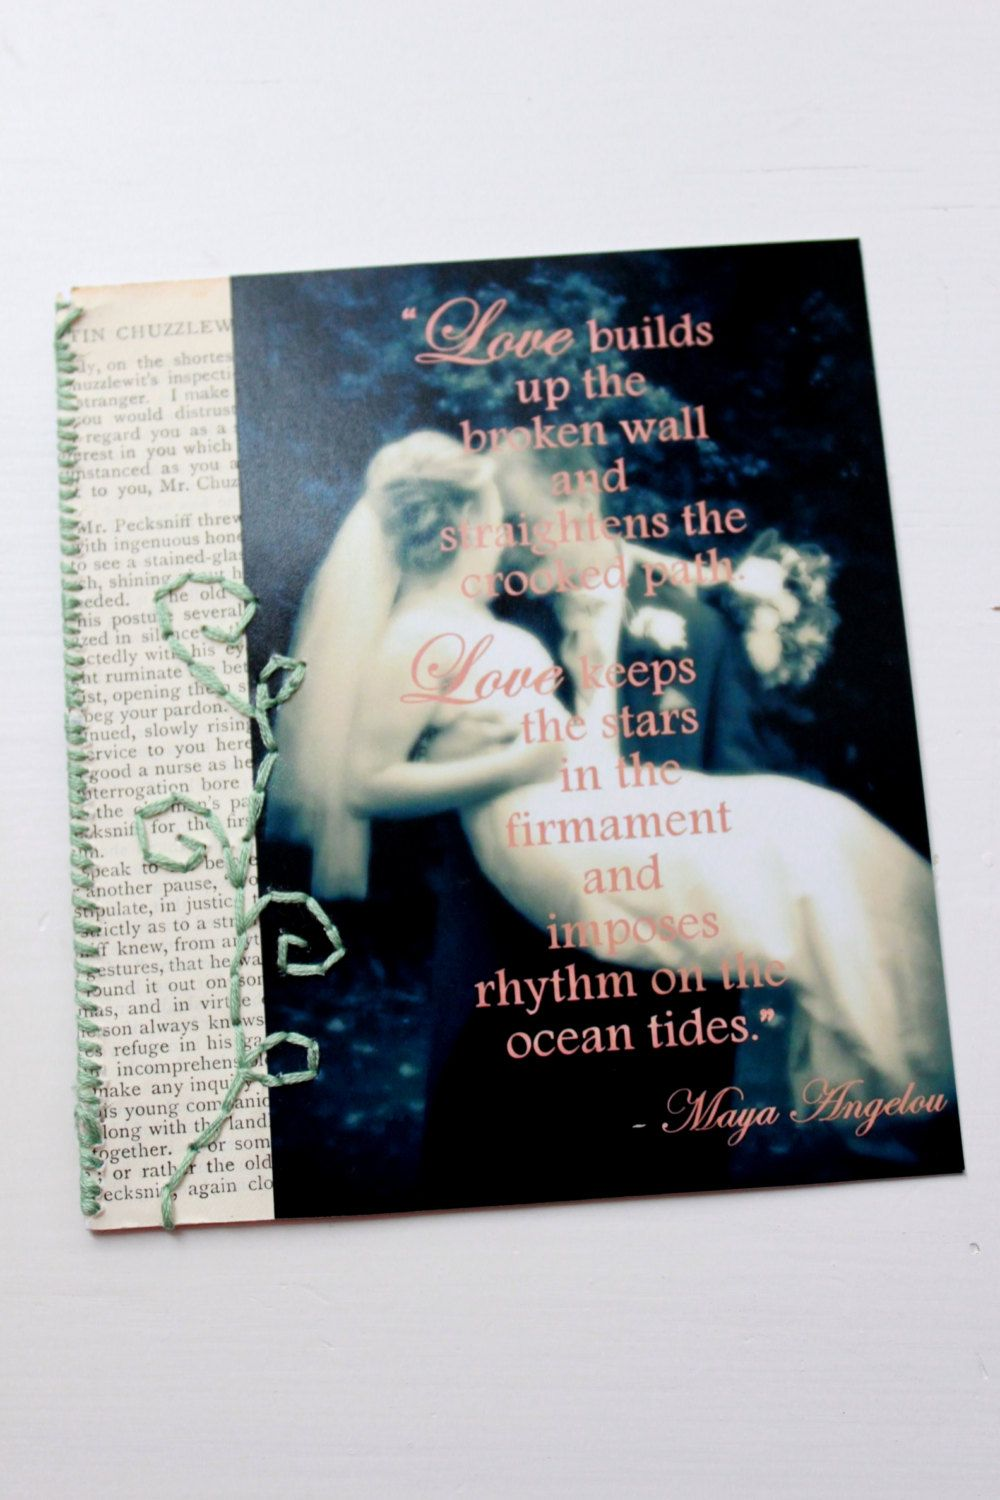 Maya angelou quote on a vintage inspired encouraging handmade maya angelou quote on a vintage inspired encouraging handmade greeting card 299 kristyandbryce Images